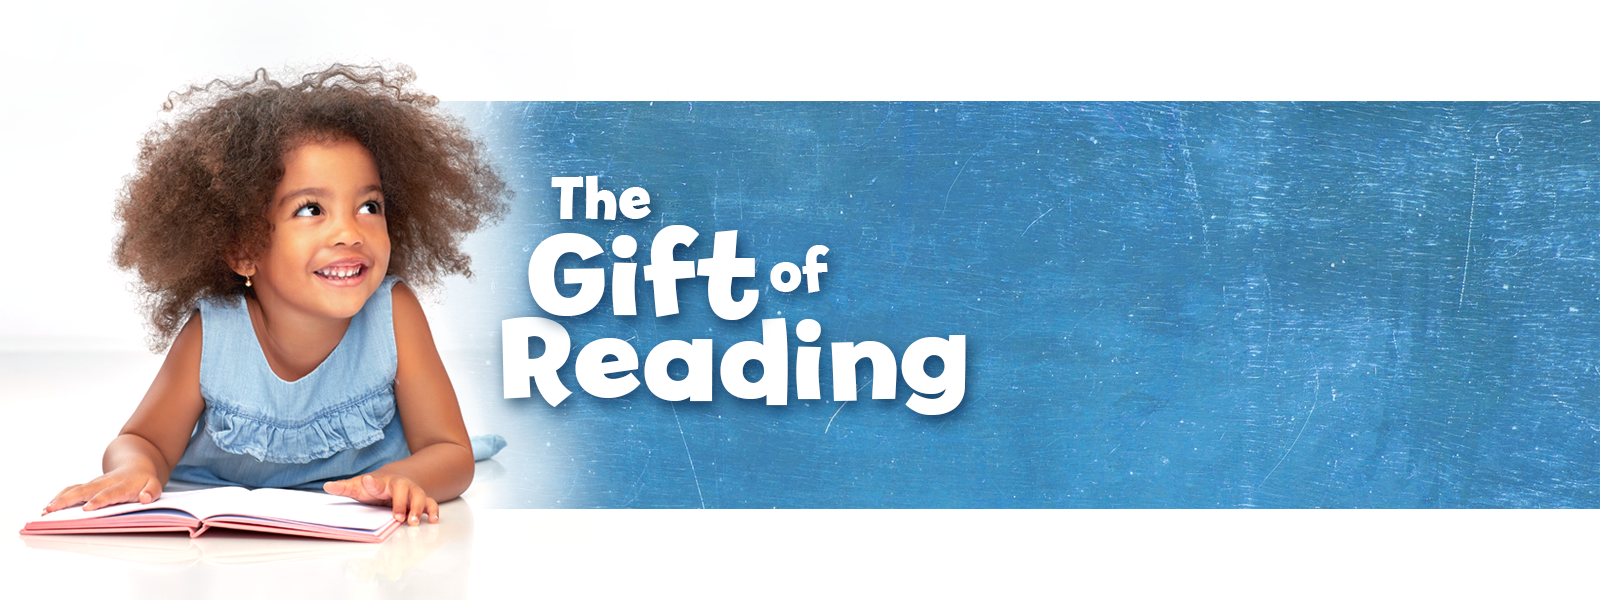 Give the Gift of Reading image